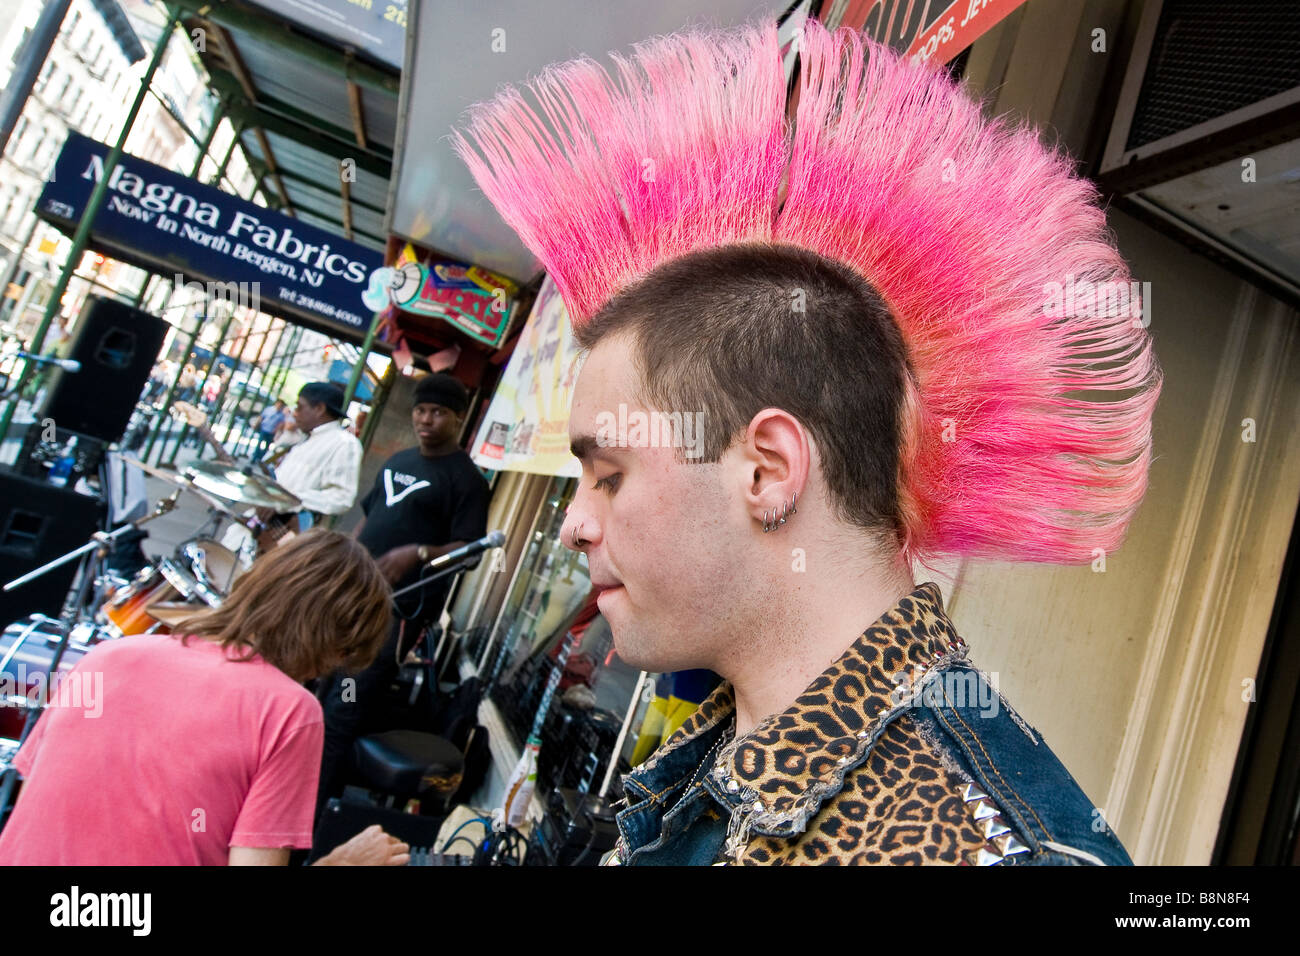 Young punk with pink Mohawk hairstyle - Stock Image